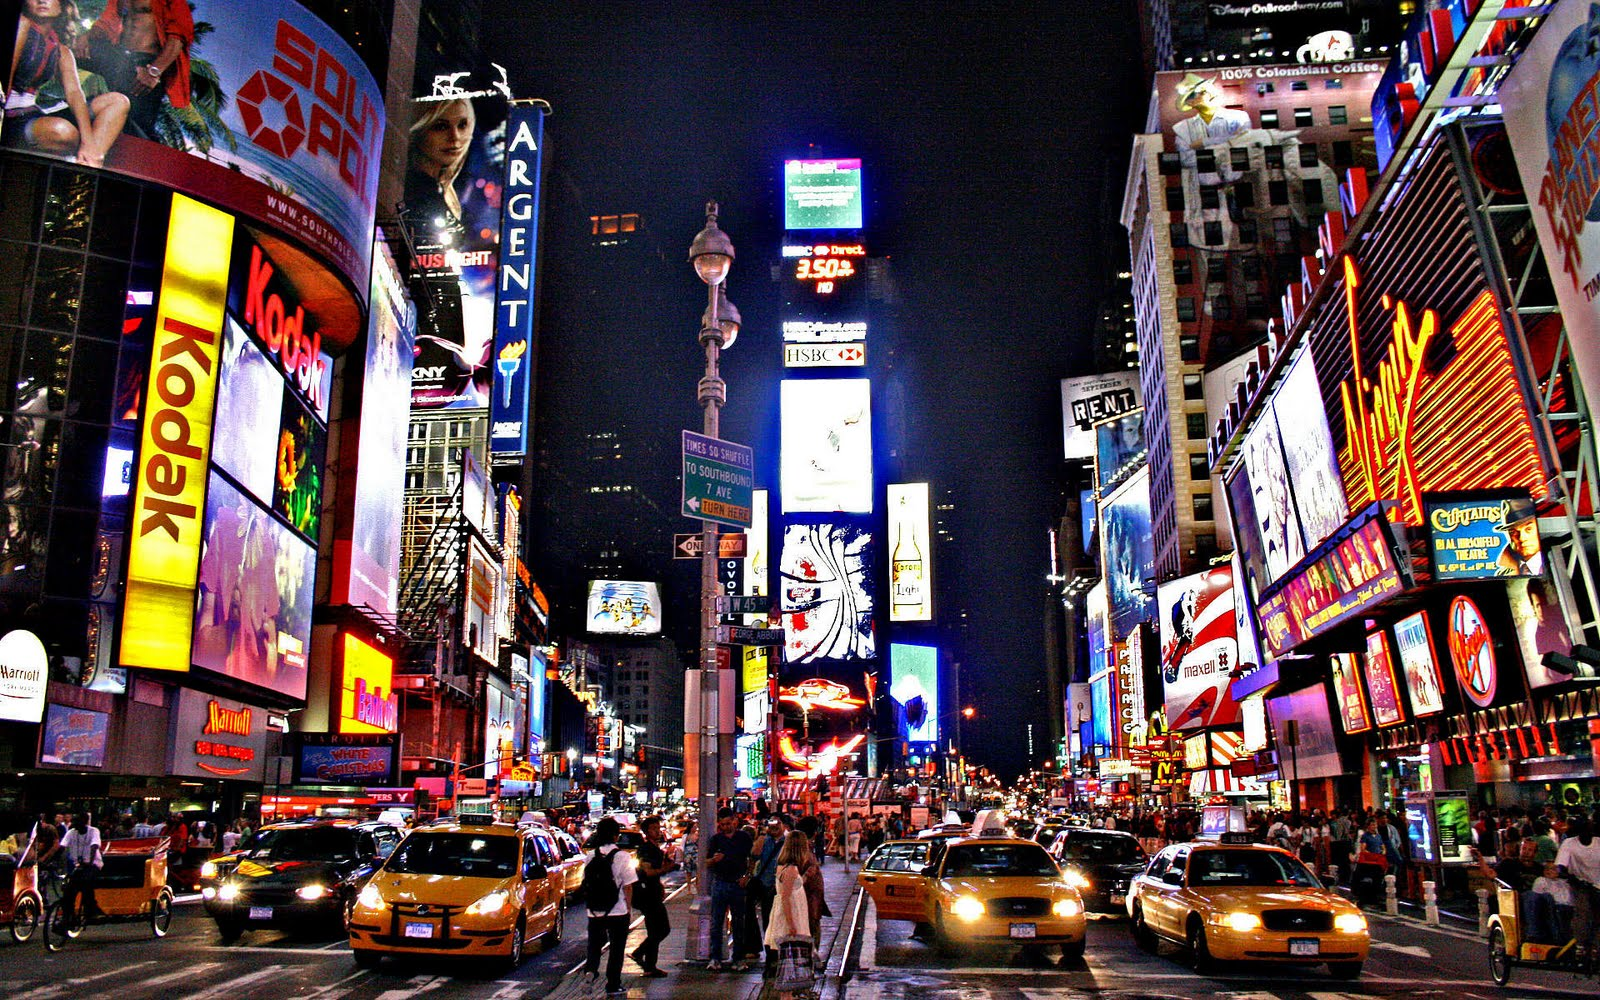 Download New York City Desktop Wallpaper 1600x1000